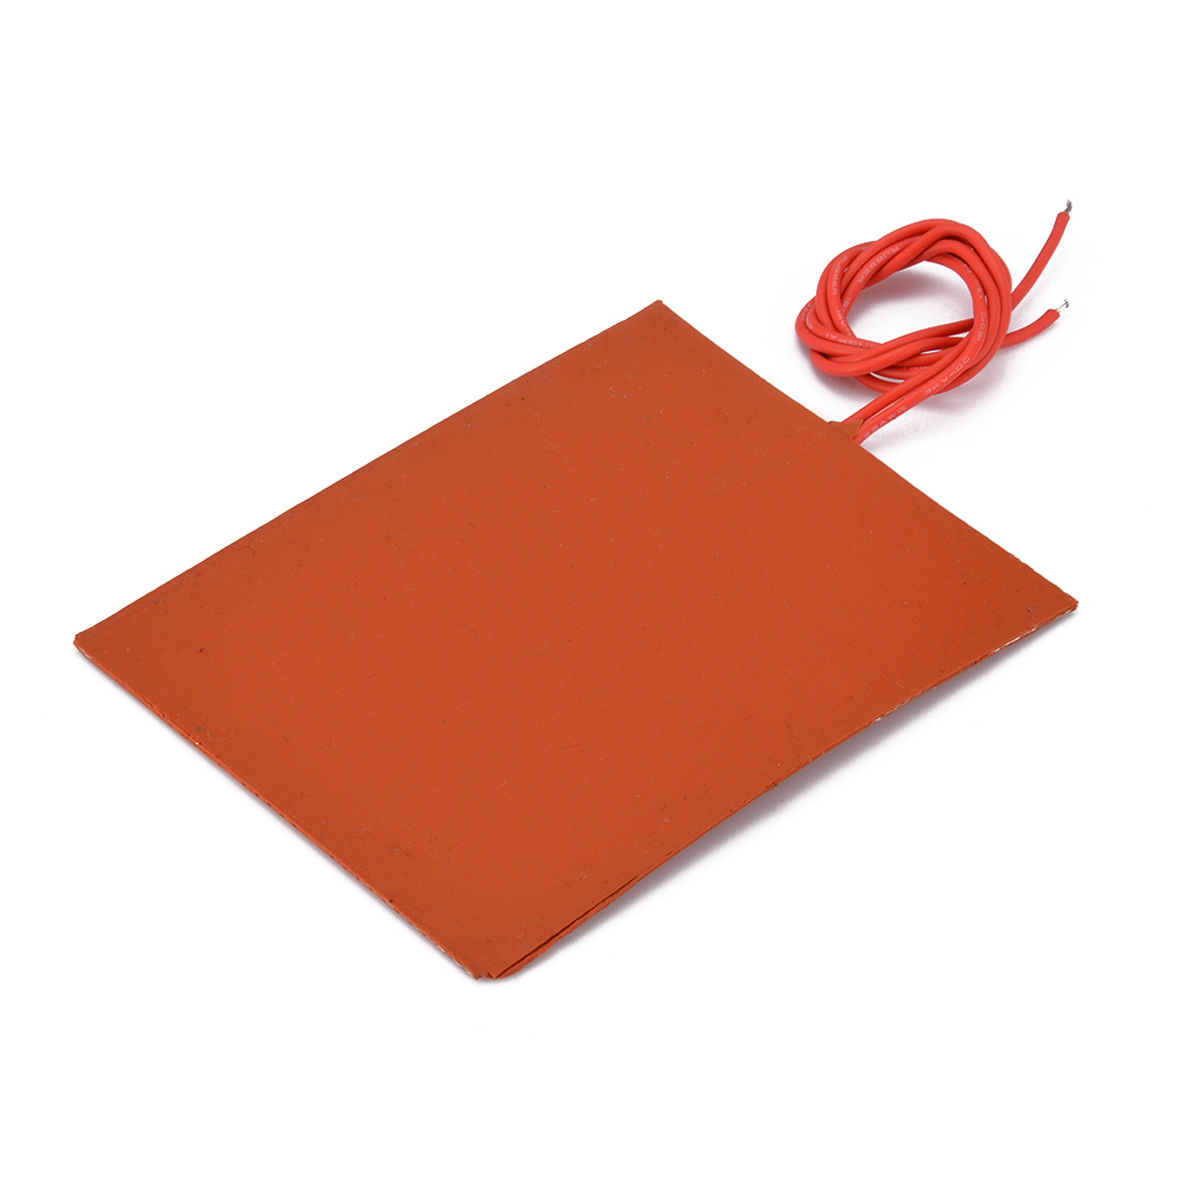 Silicone Heater Bed Pad 12V DC 80x100mm 20W  Waterproof Flexible Heating Pads Engine Oil Tank Electric Warming Mats